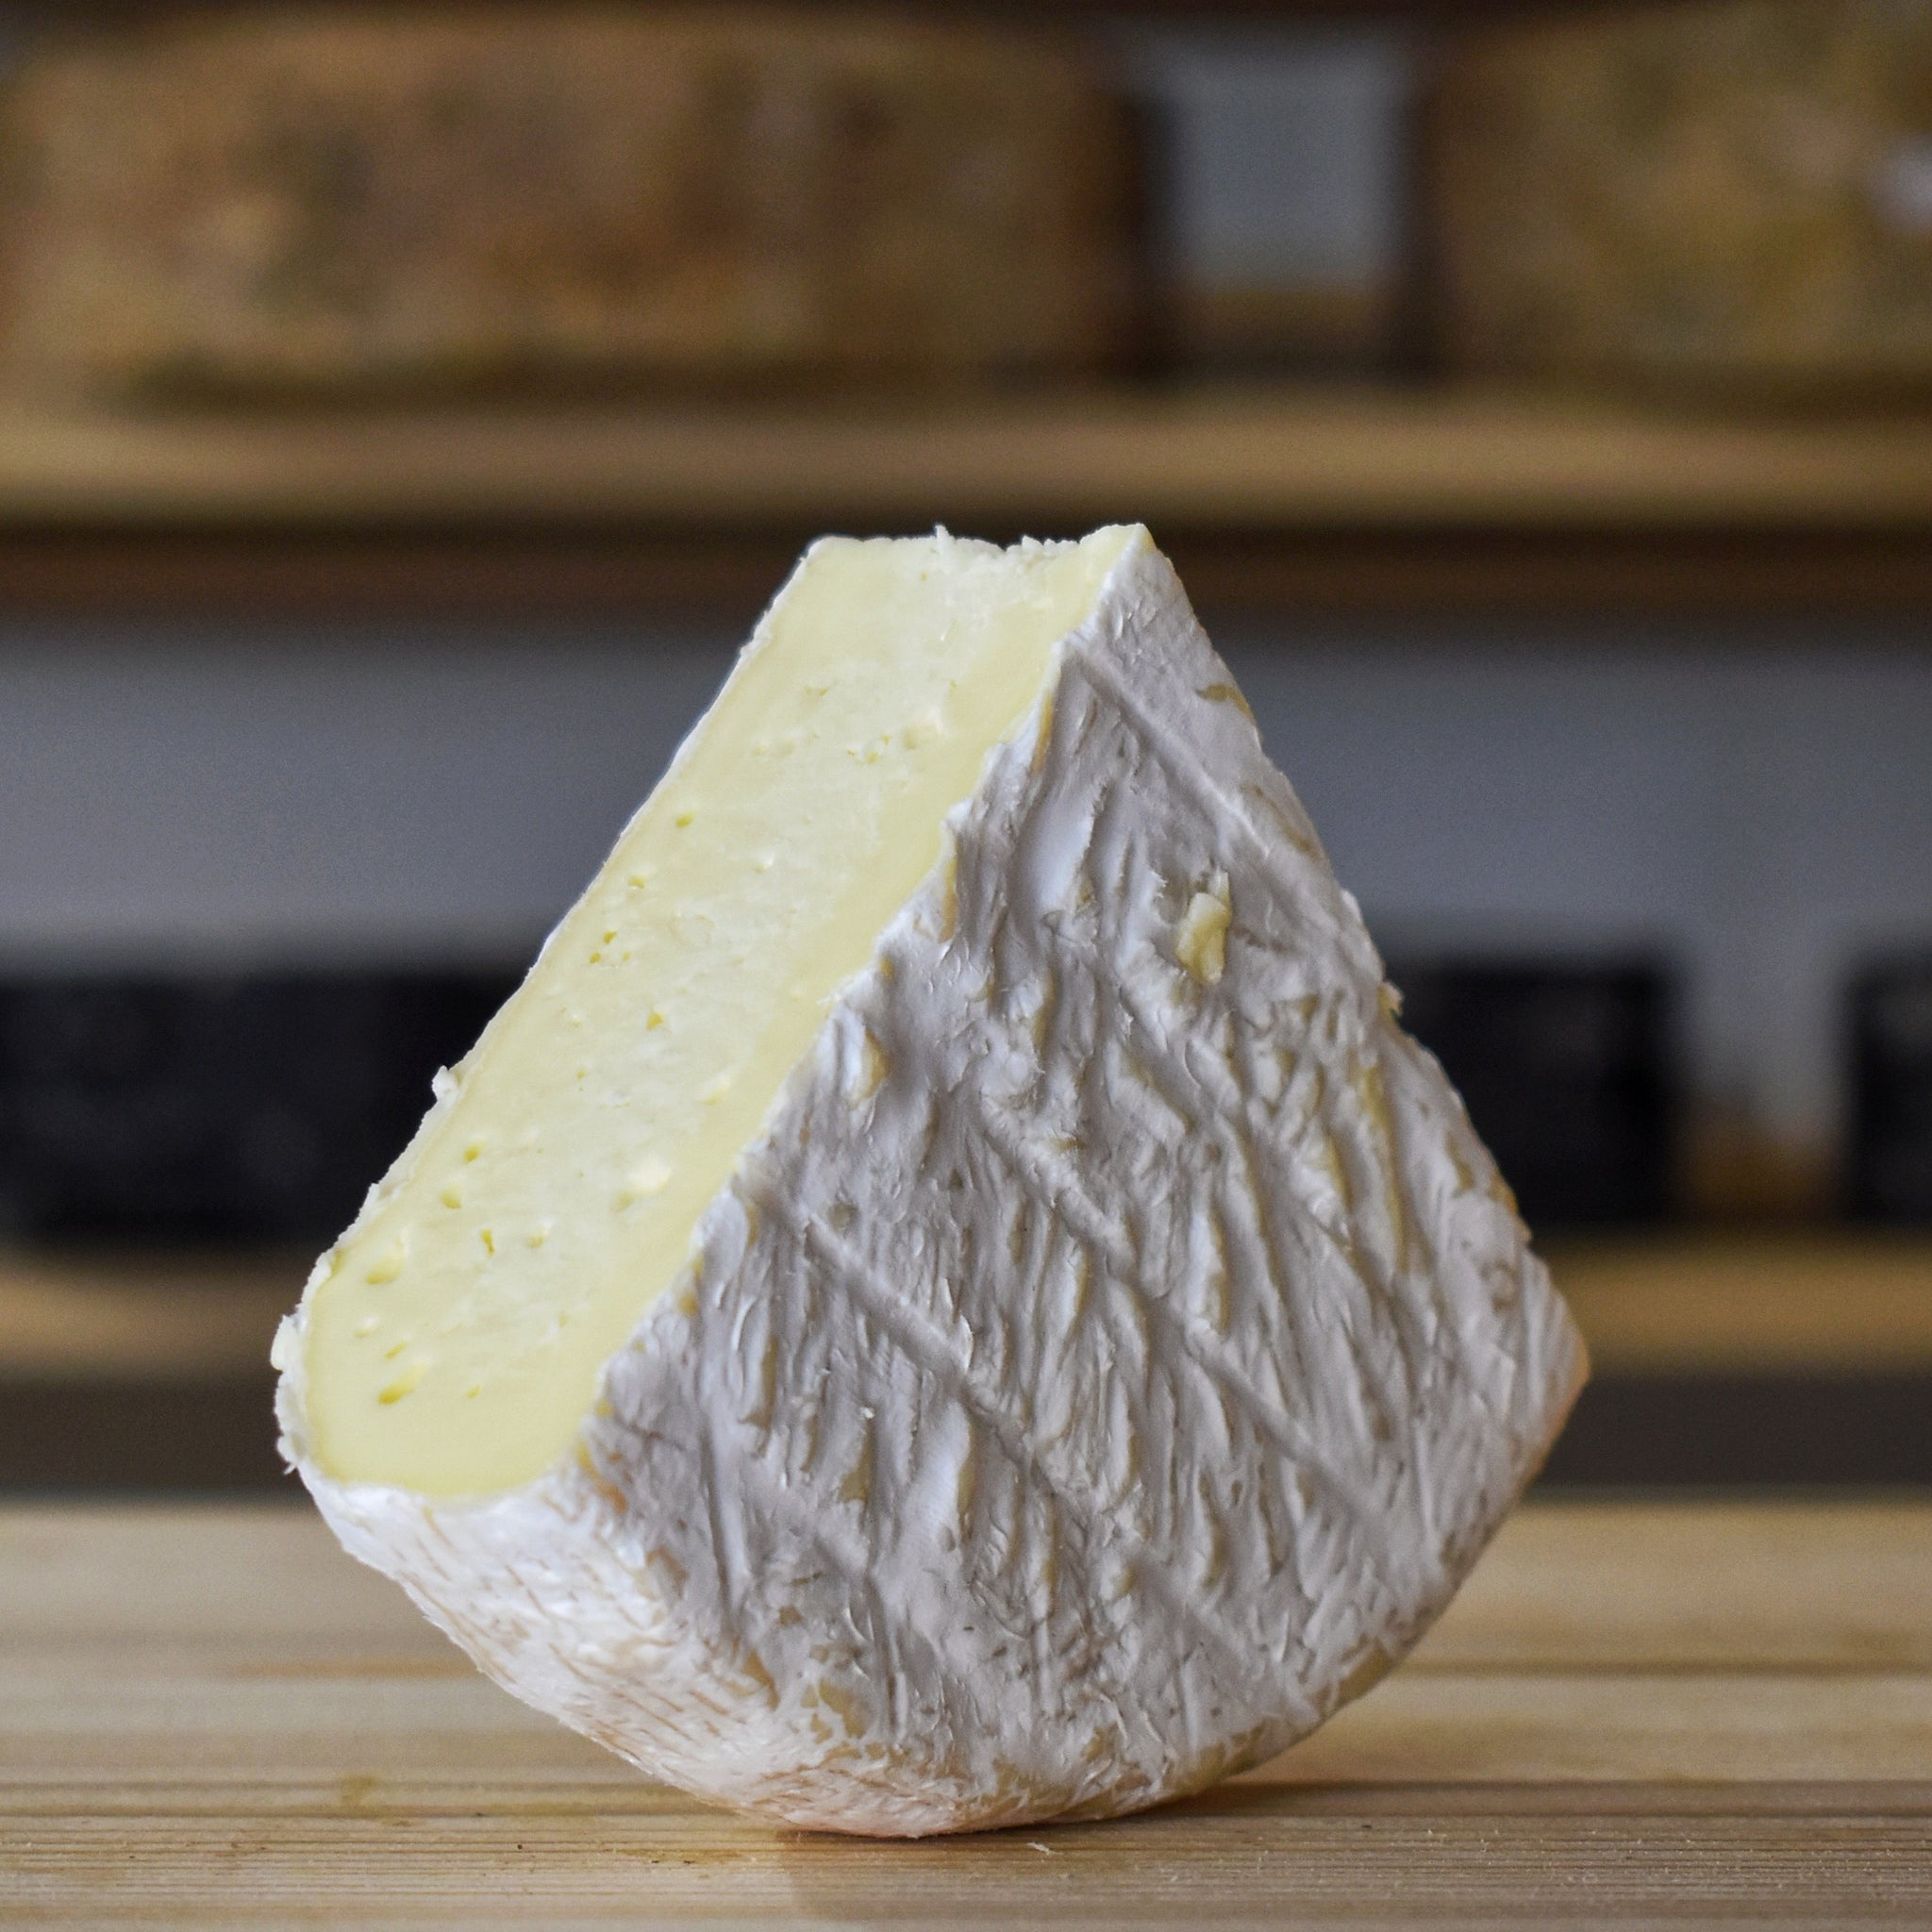 Sussex Camembert - Rennet & Rind British Artisan Cheese